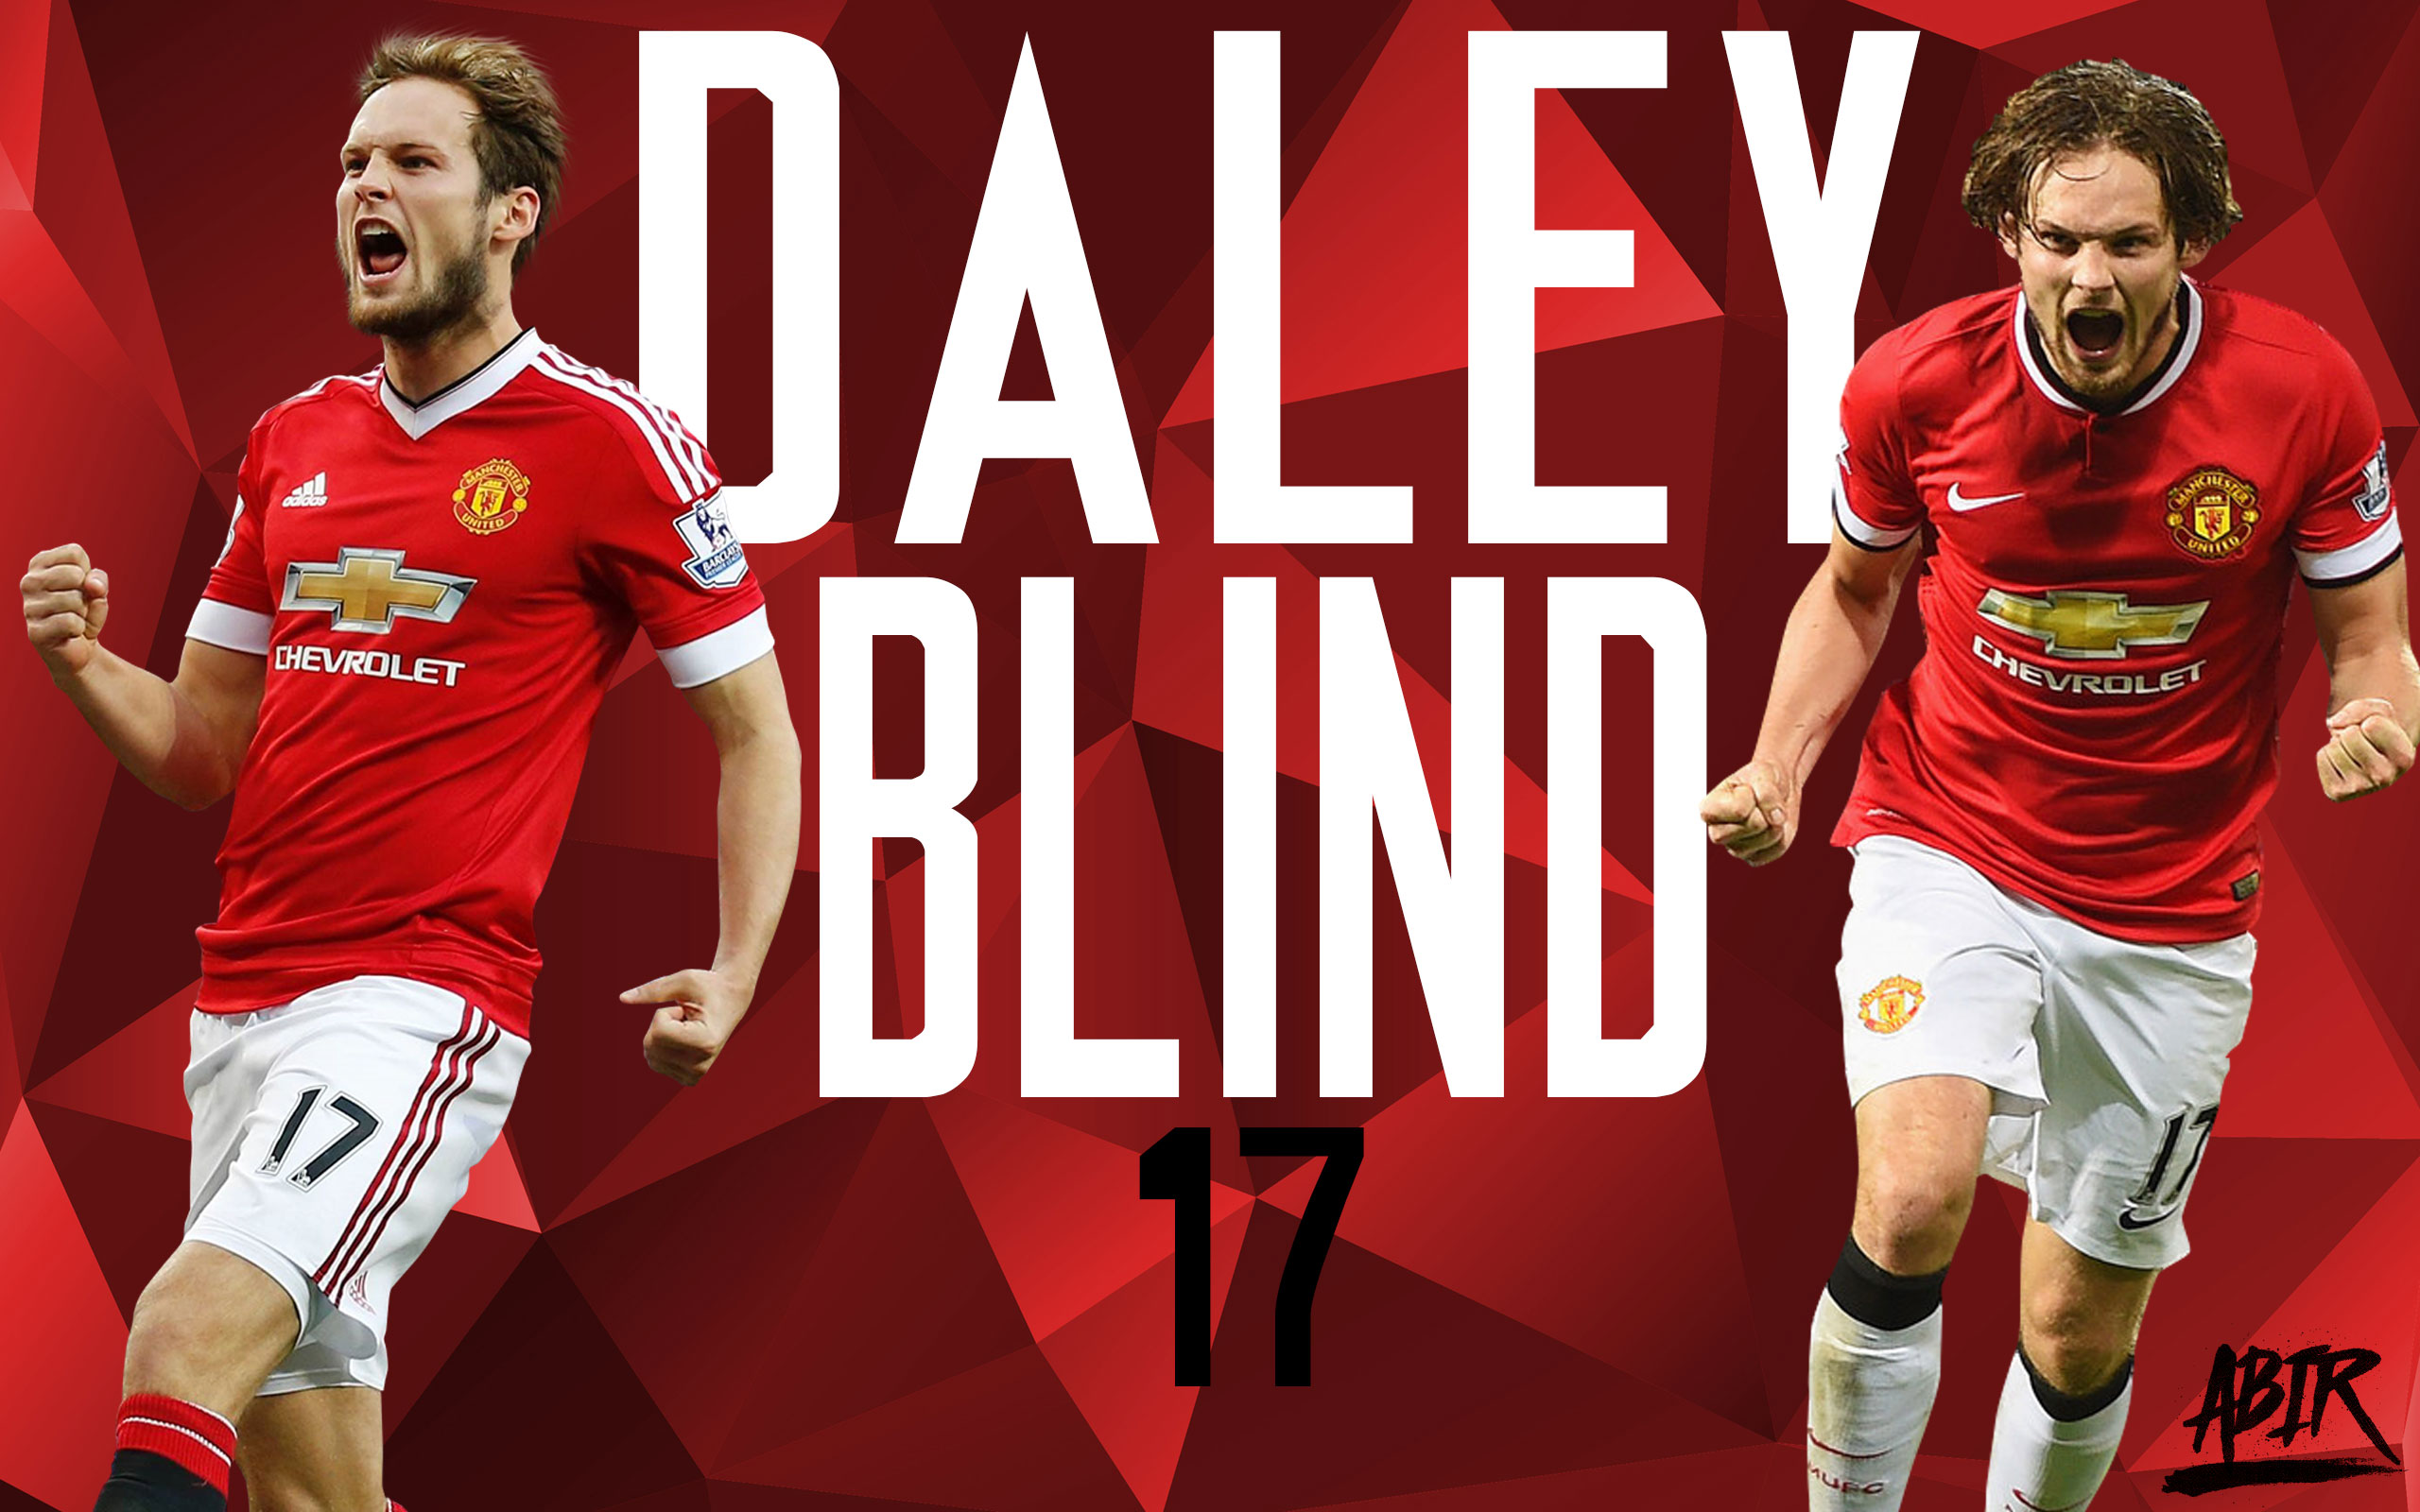 Daley Blind Wallpaper: Daley Blind Wallpaper By Abir07 On DeviantArt